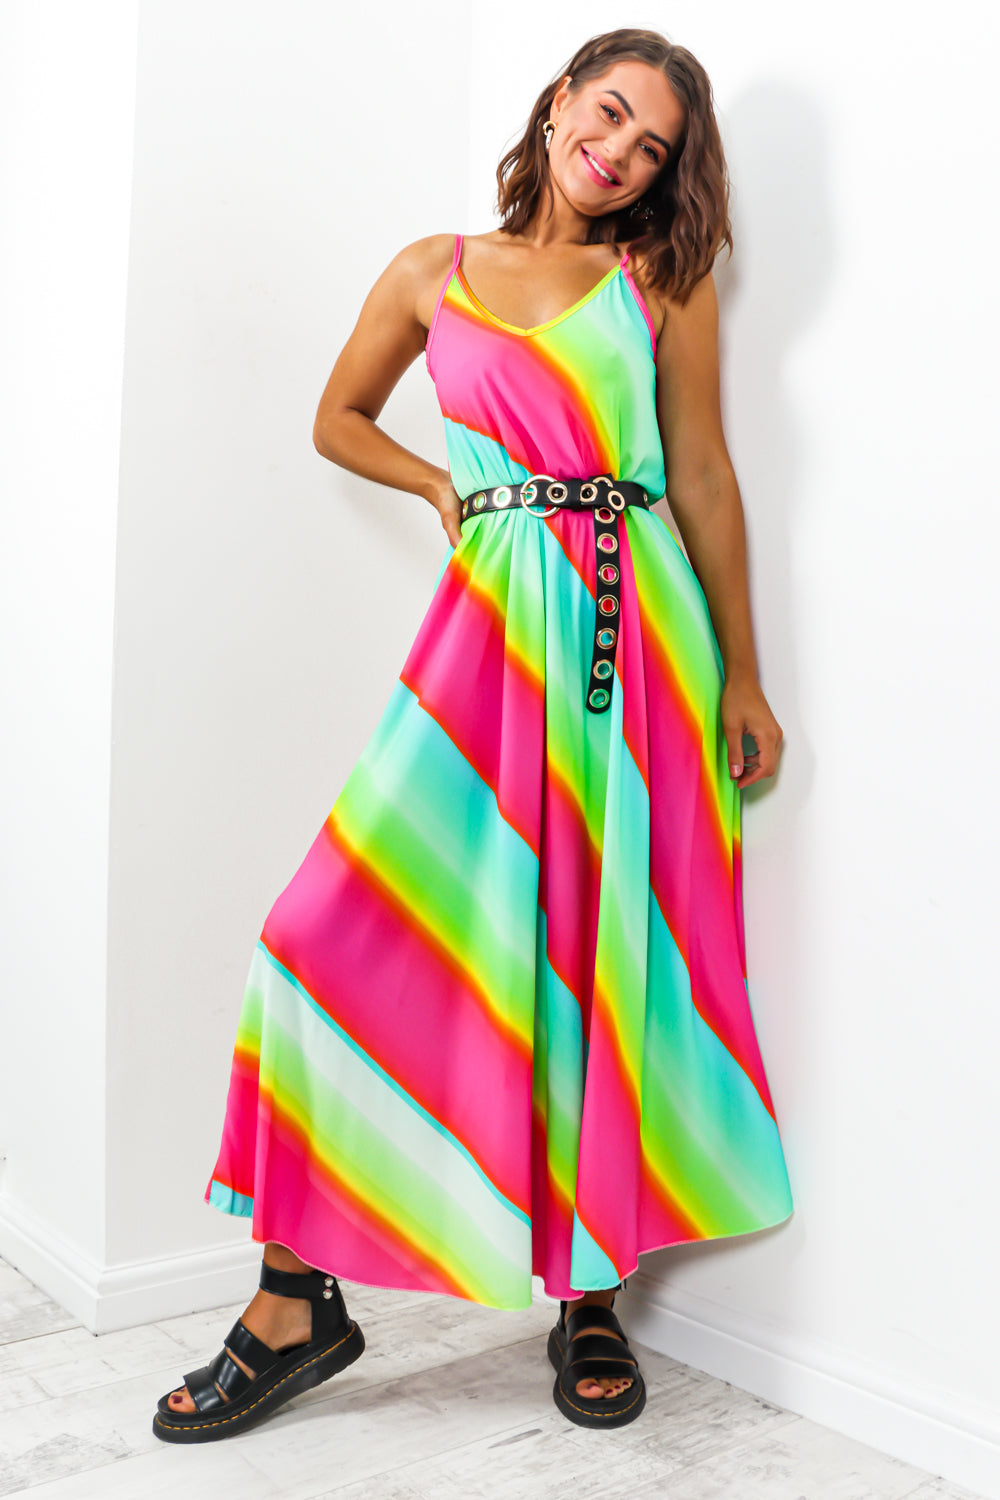 Sunshine And Rainbows - Dress In PINK/MULTI